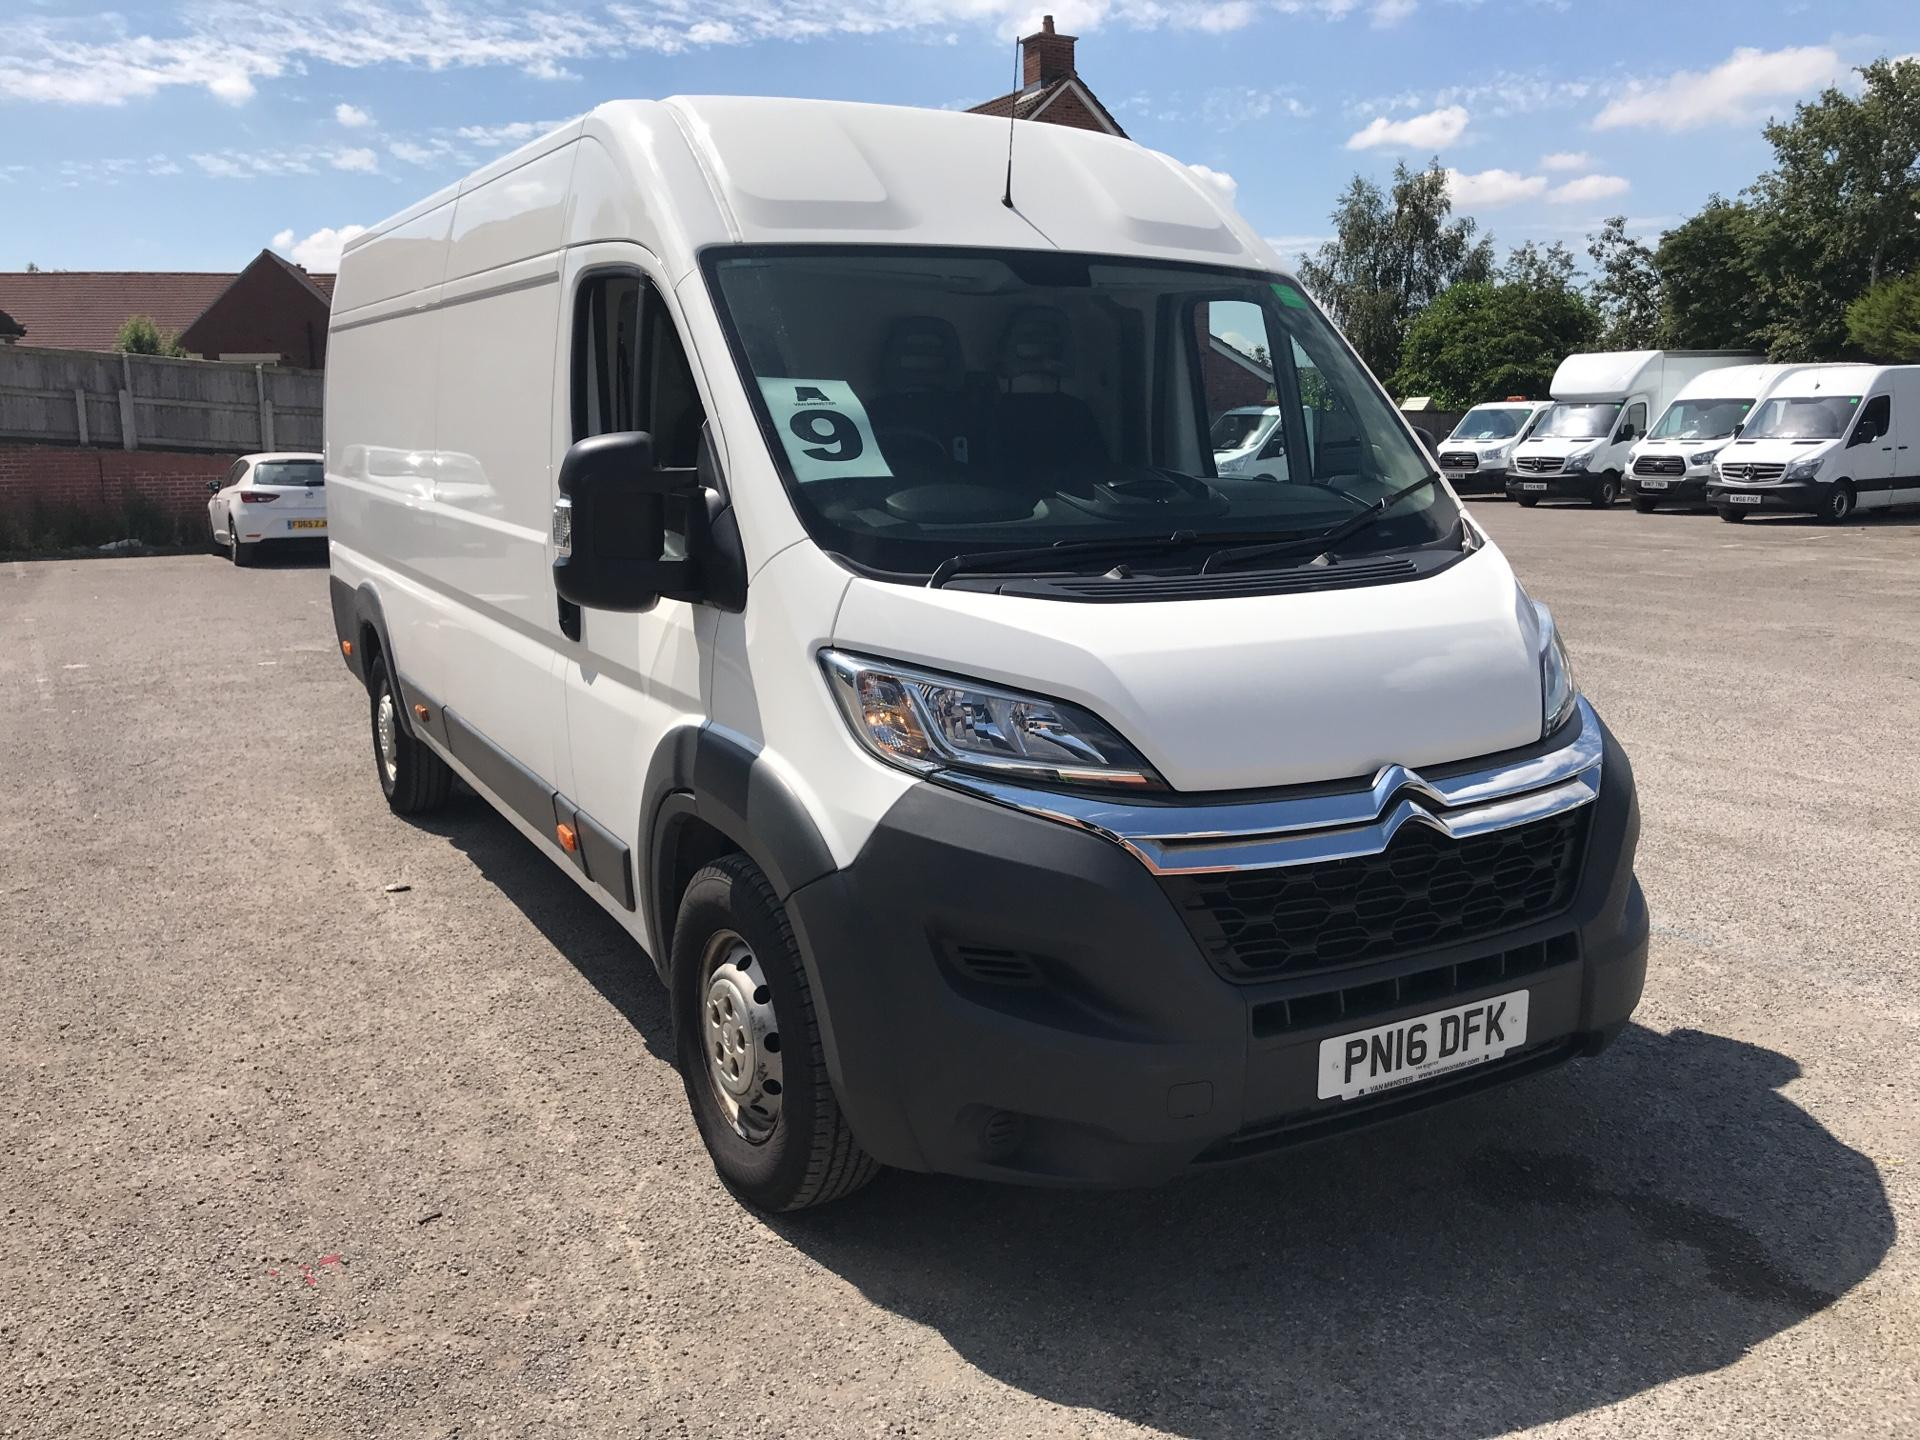 2016 Citroen Relay 2.2 Hdi H2 Van 130Ps EURO 5 (PN16DFK)